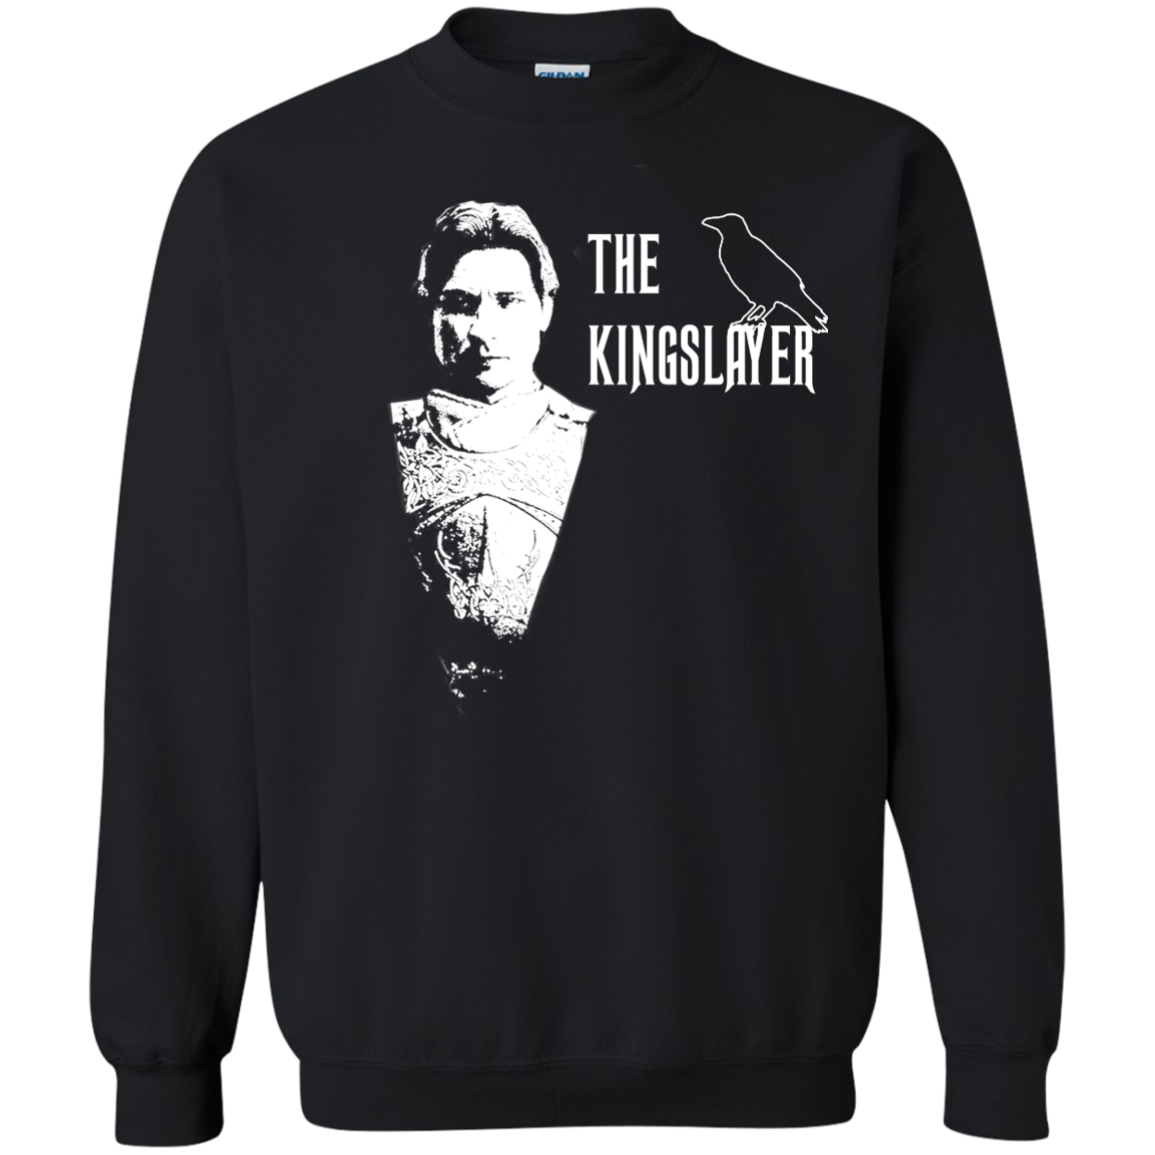 Kingslayer Jaime Lannister Game Of Thrones T shirts Hoodies Gifts Clothing Items